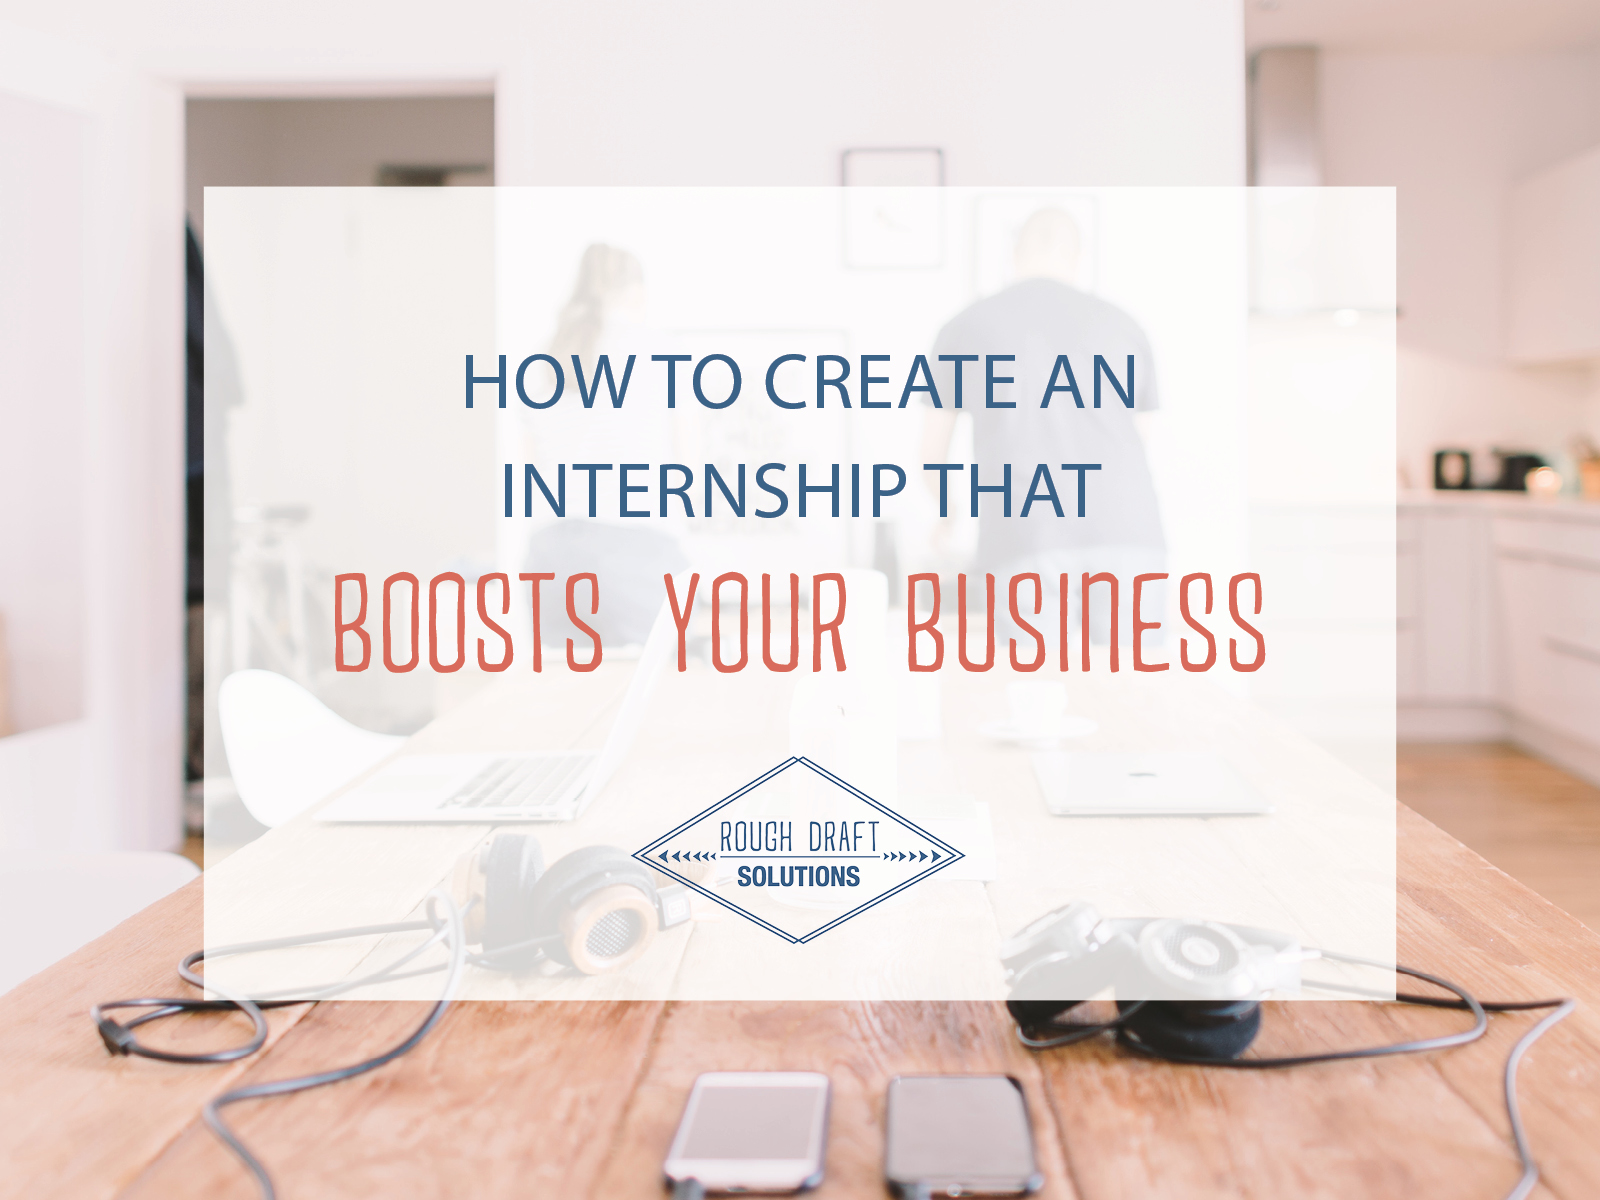 How to Create an Internship that Boosts Your Business